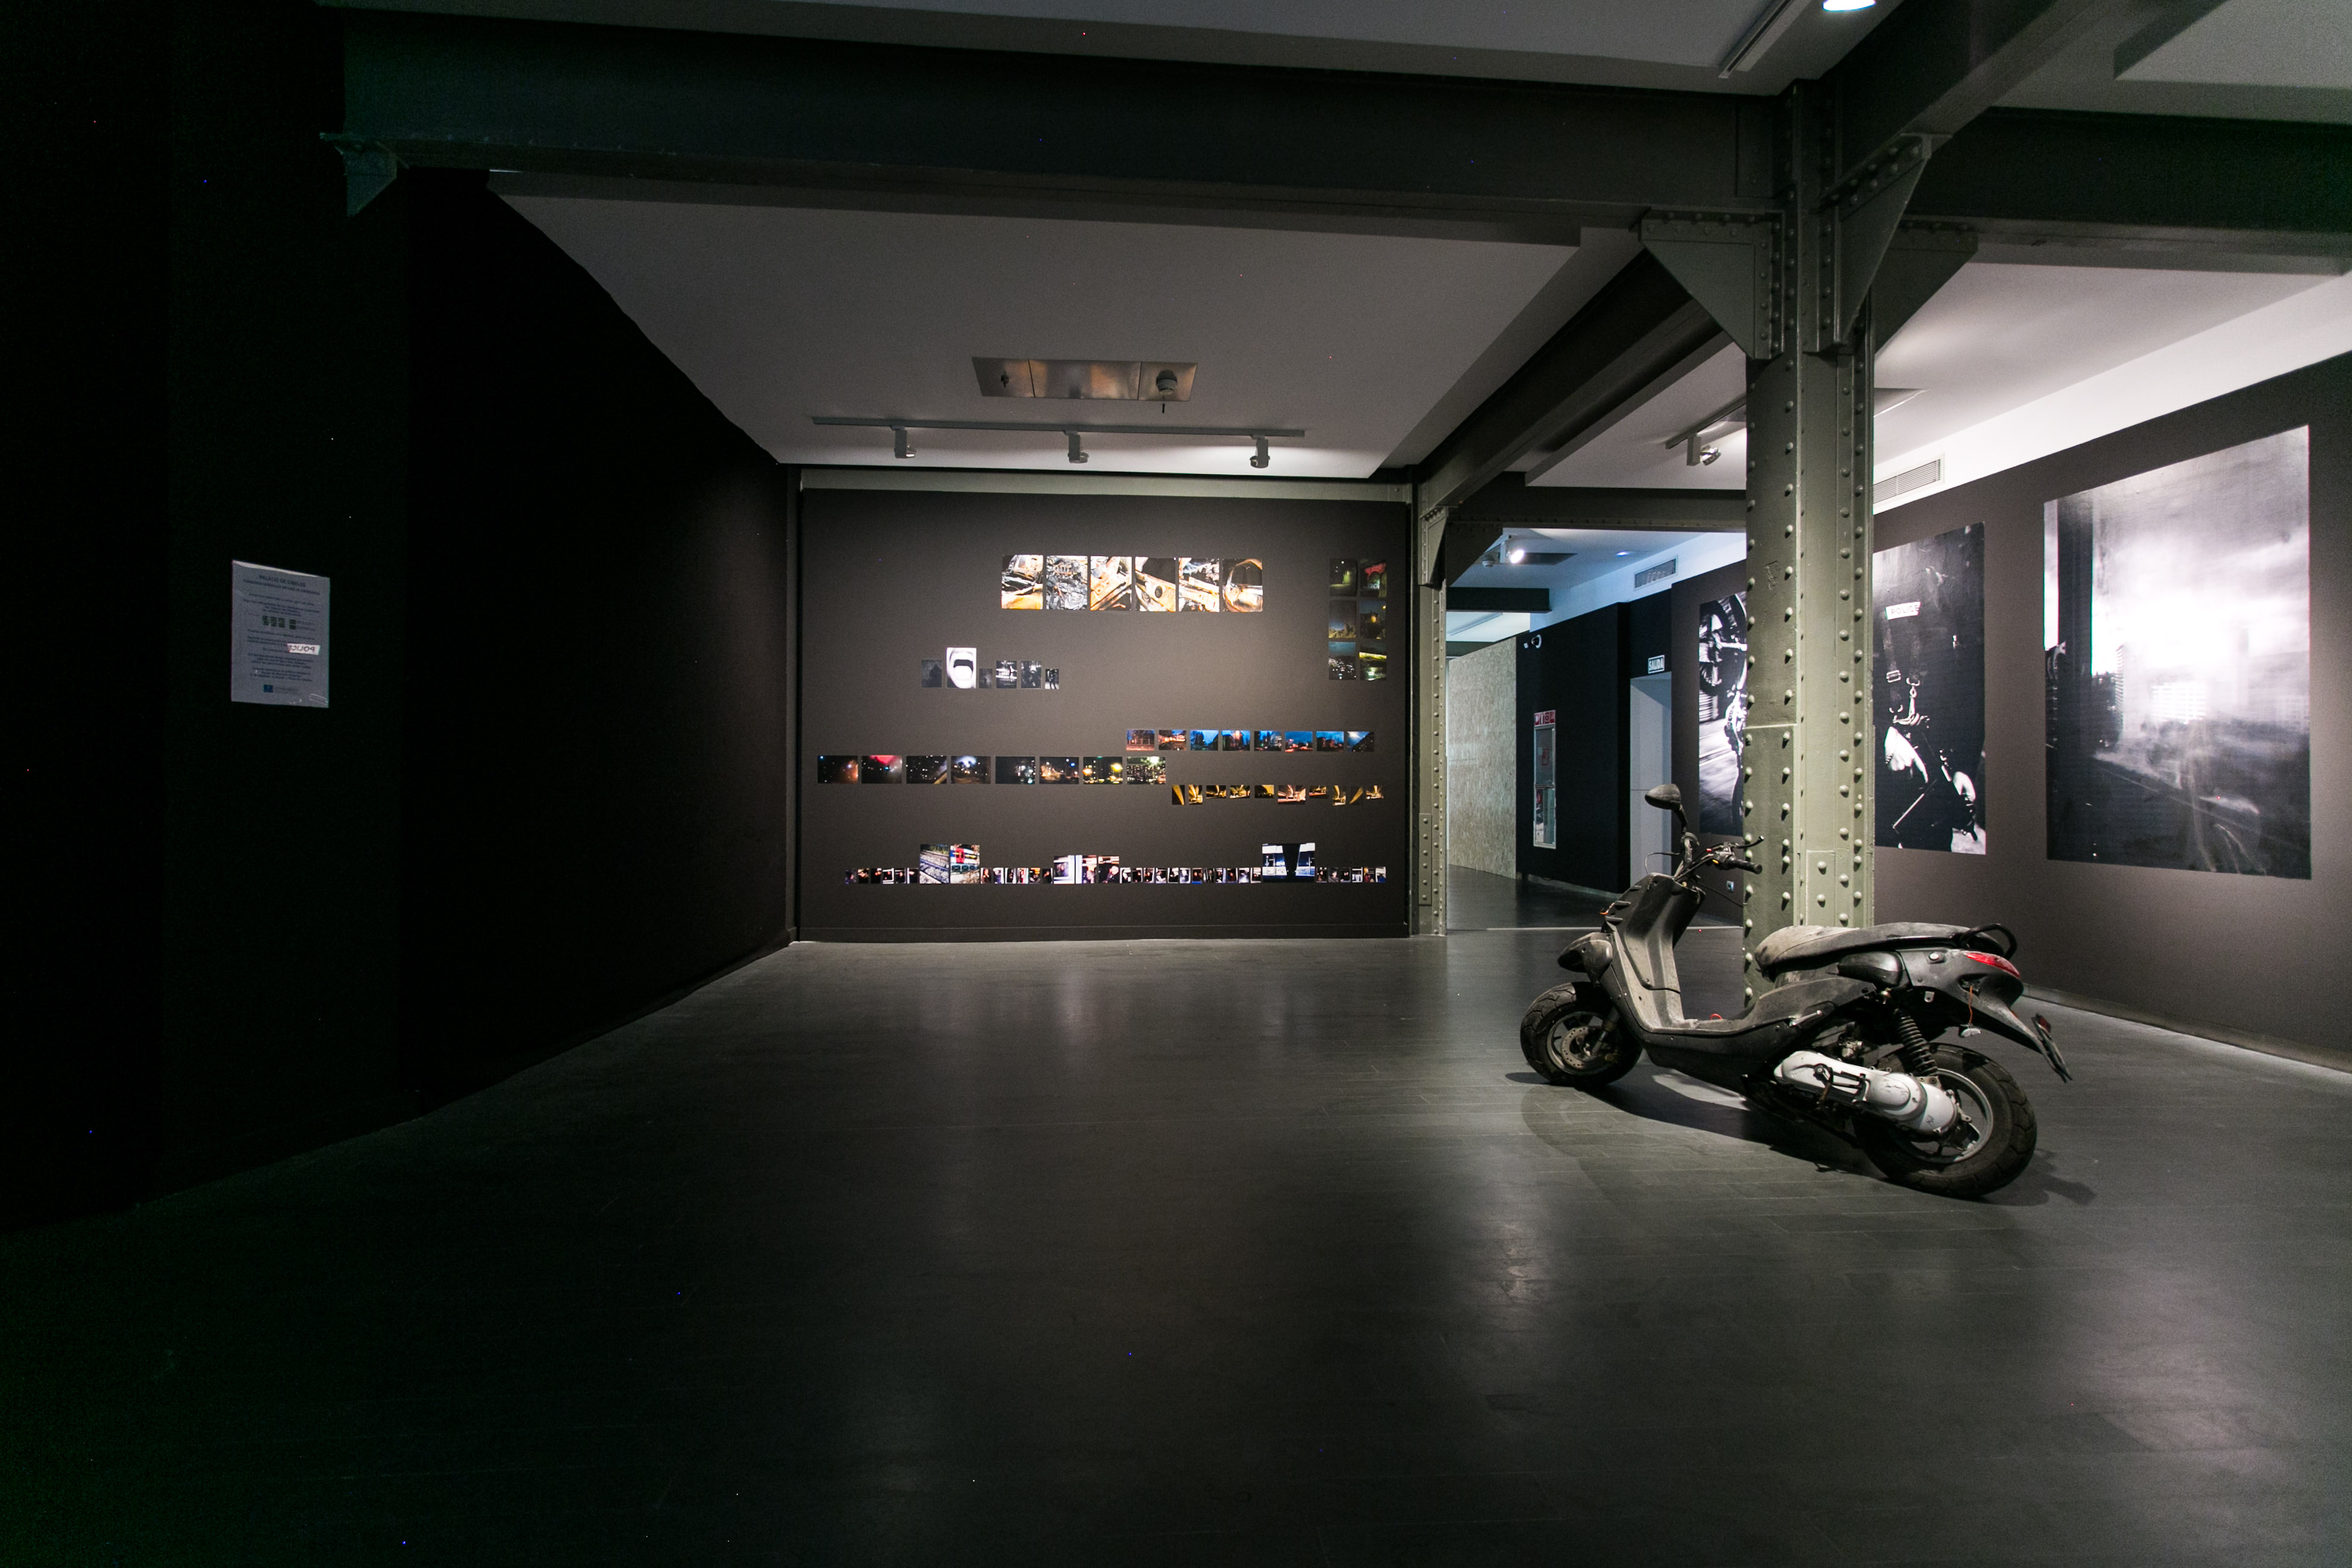 CentroCentro-lamemeindifference-012